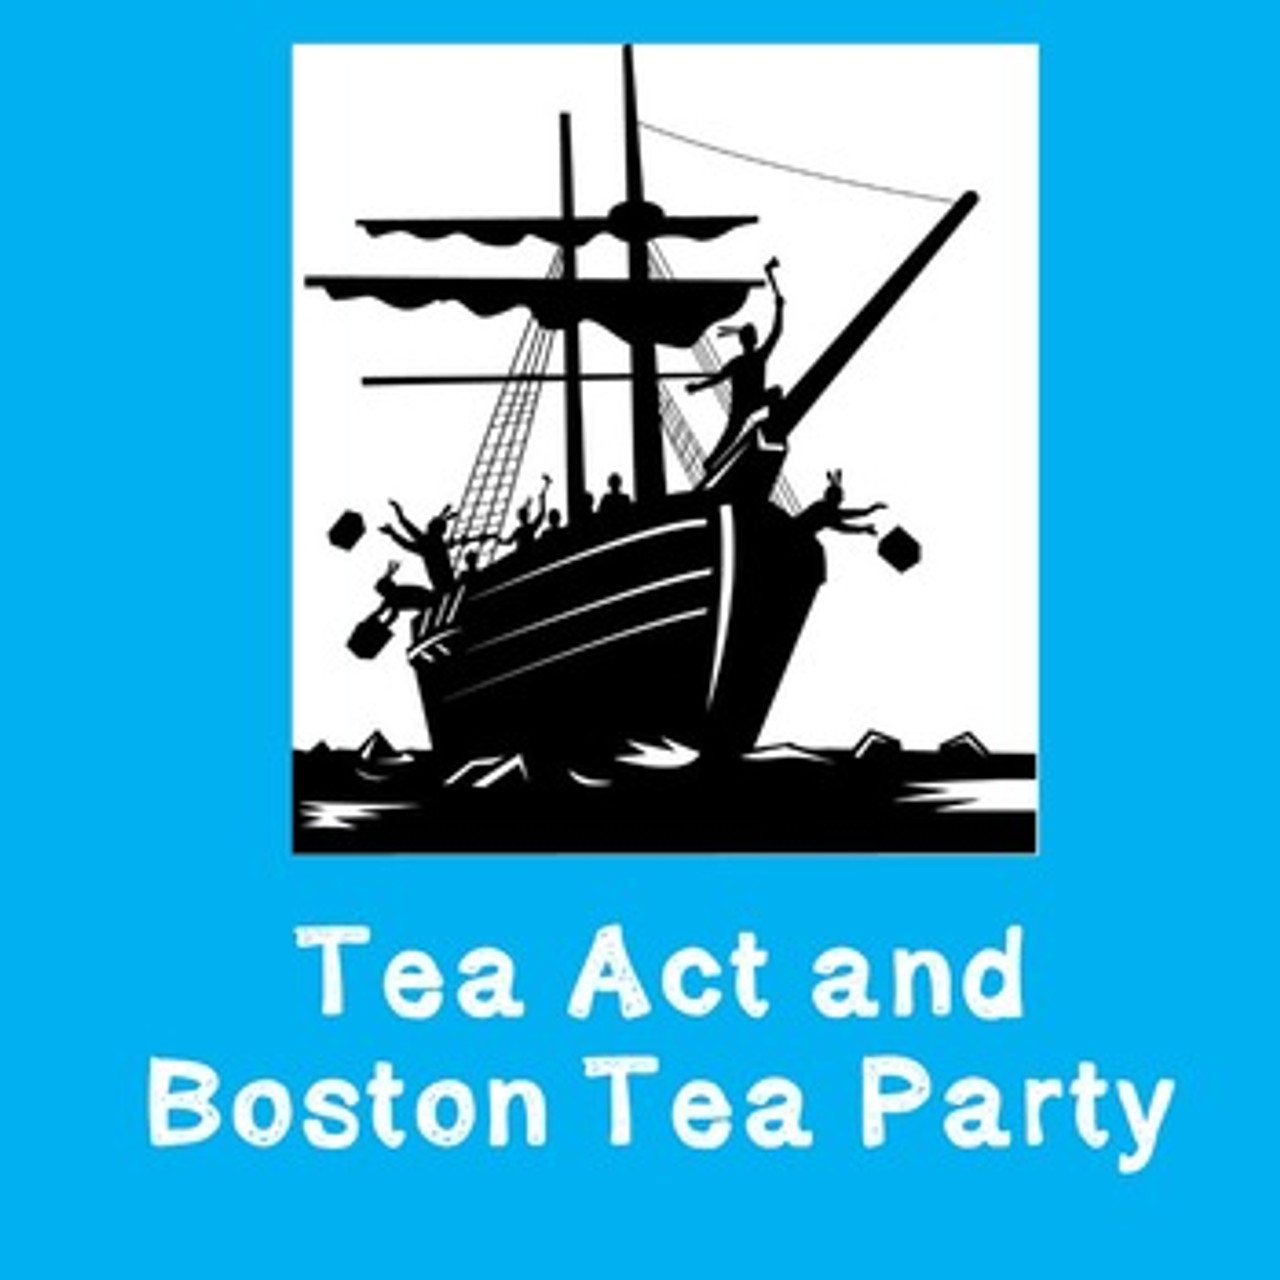 medium resolution of Tea Act and Boston Tea Party - Amped Up Learning